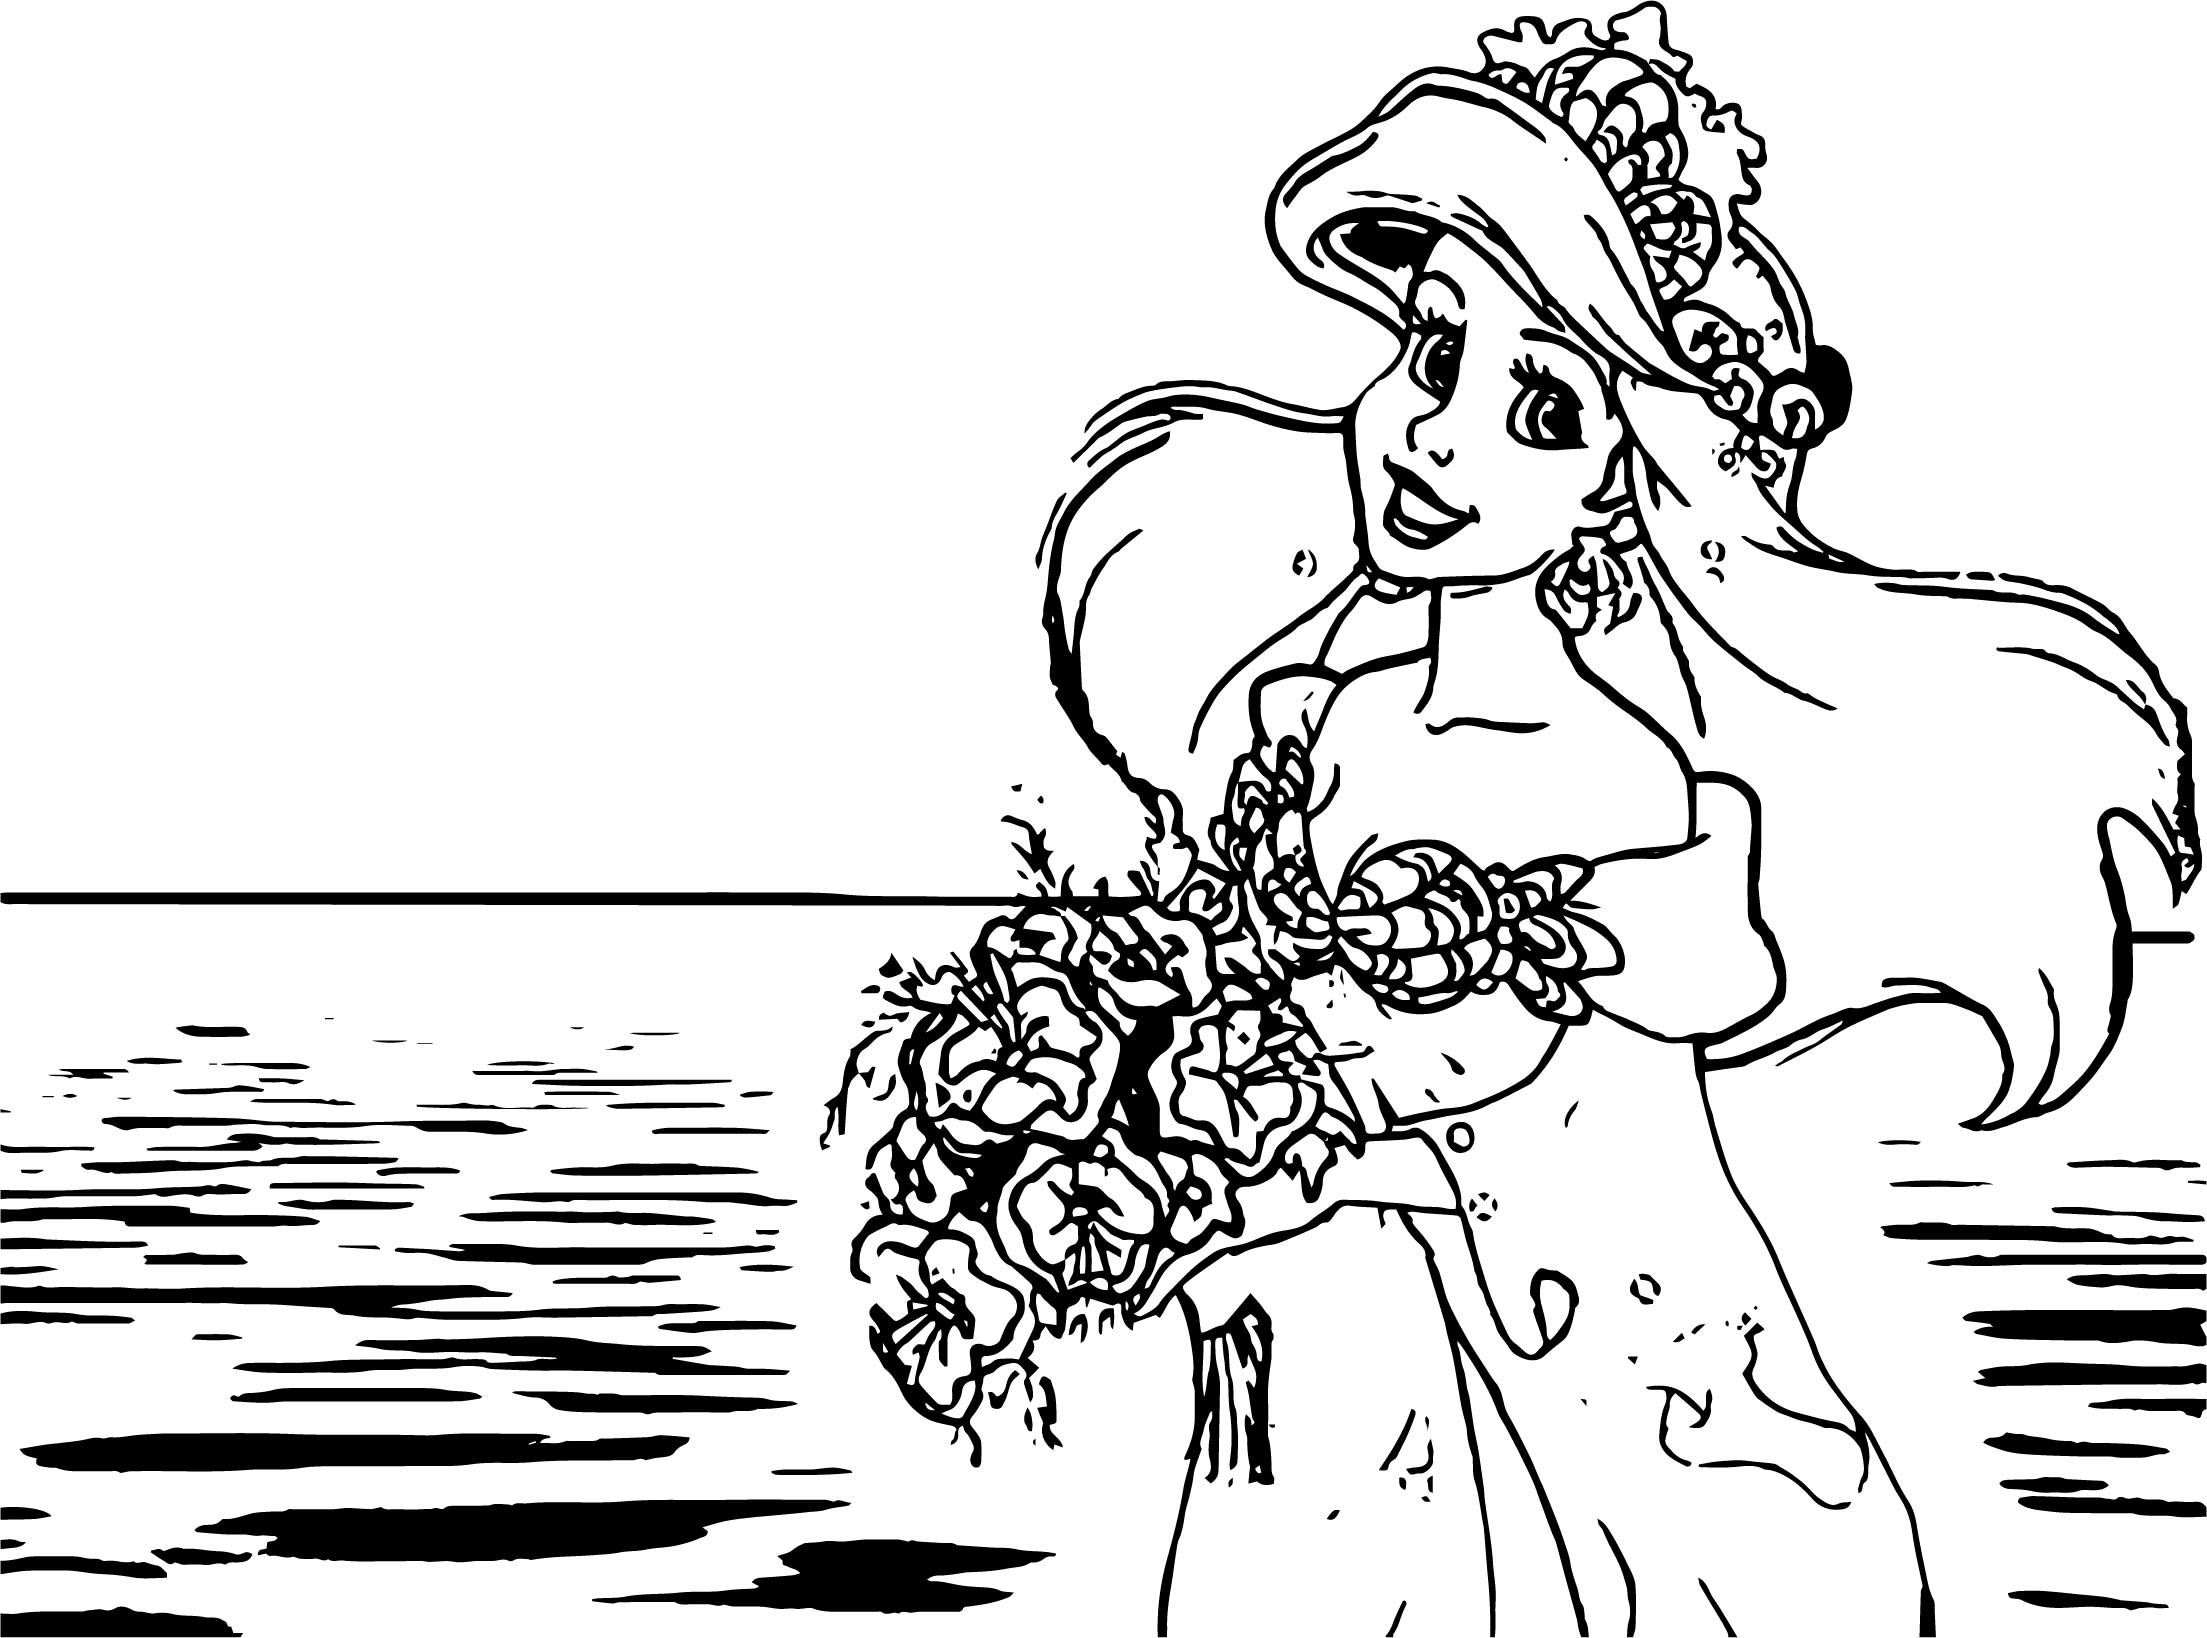 ariel mermaid sea girl wedding coloring page - Wedding Coloring Pages